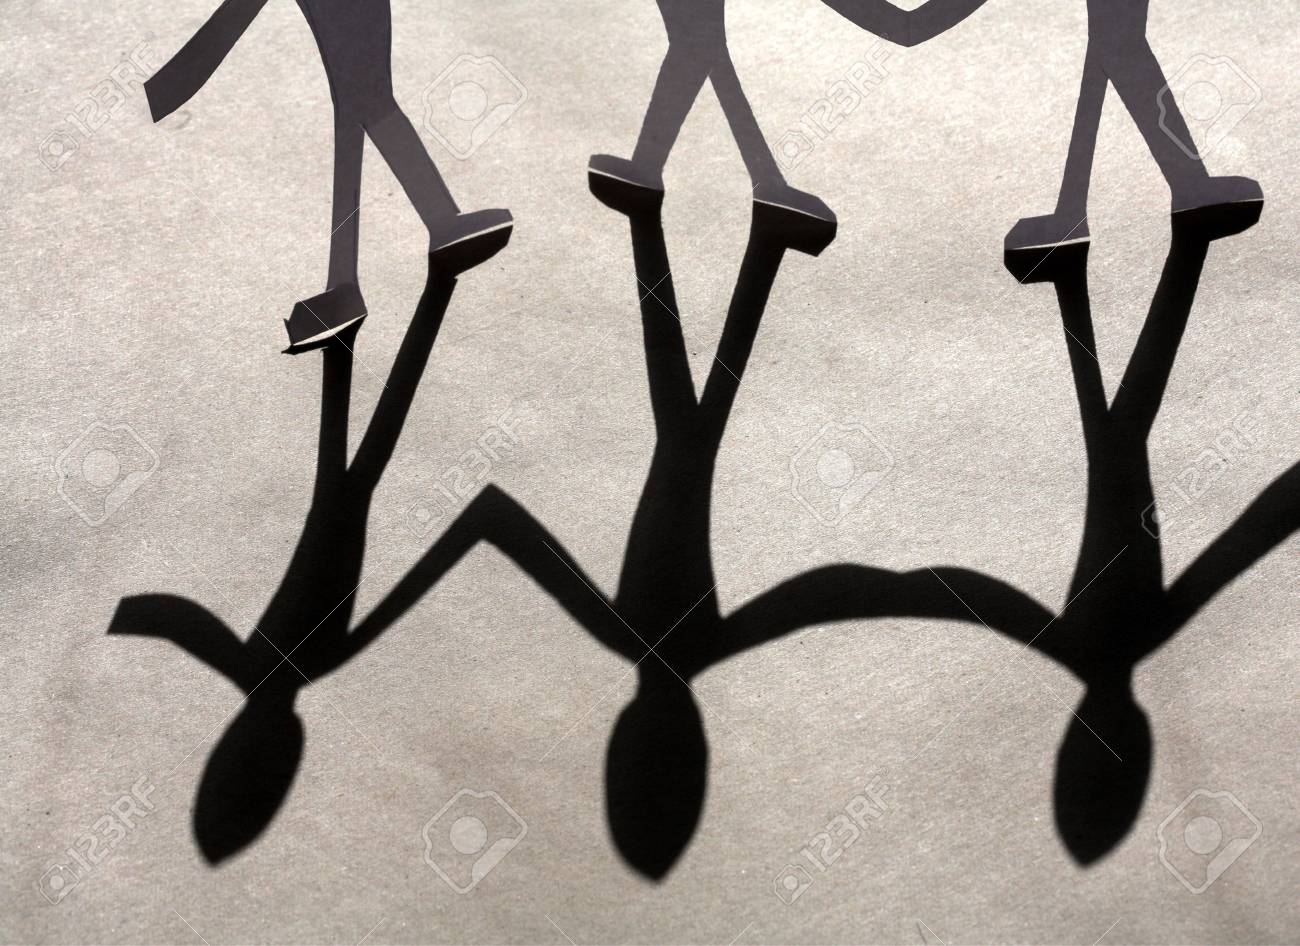 small rudimentary figures of man in paper Stock Photo - 9409298